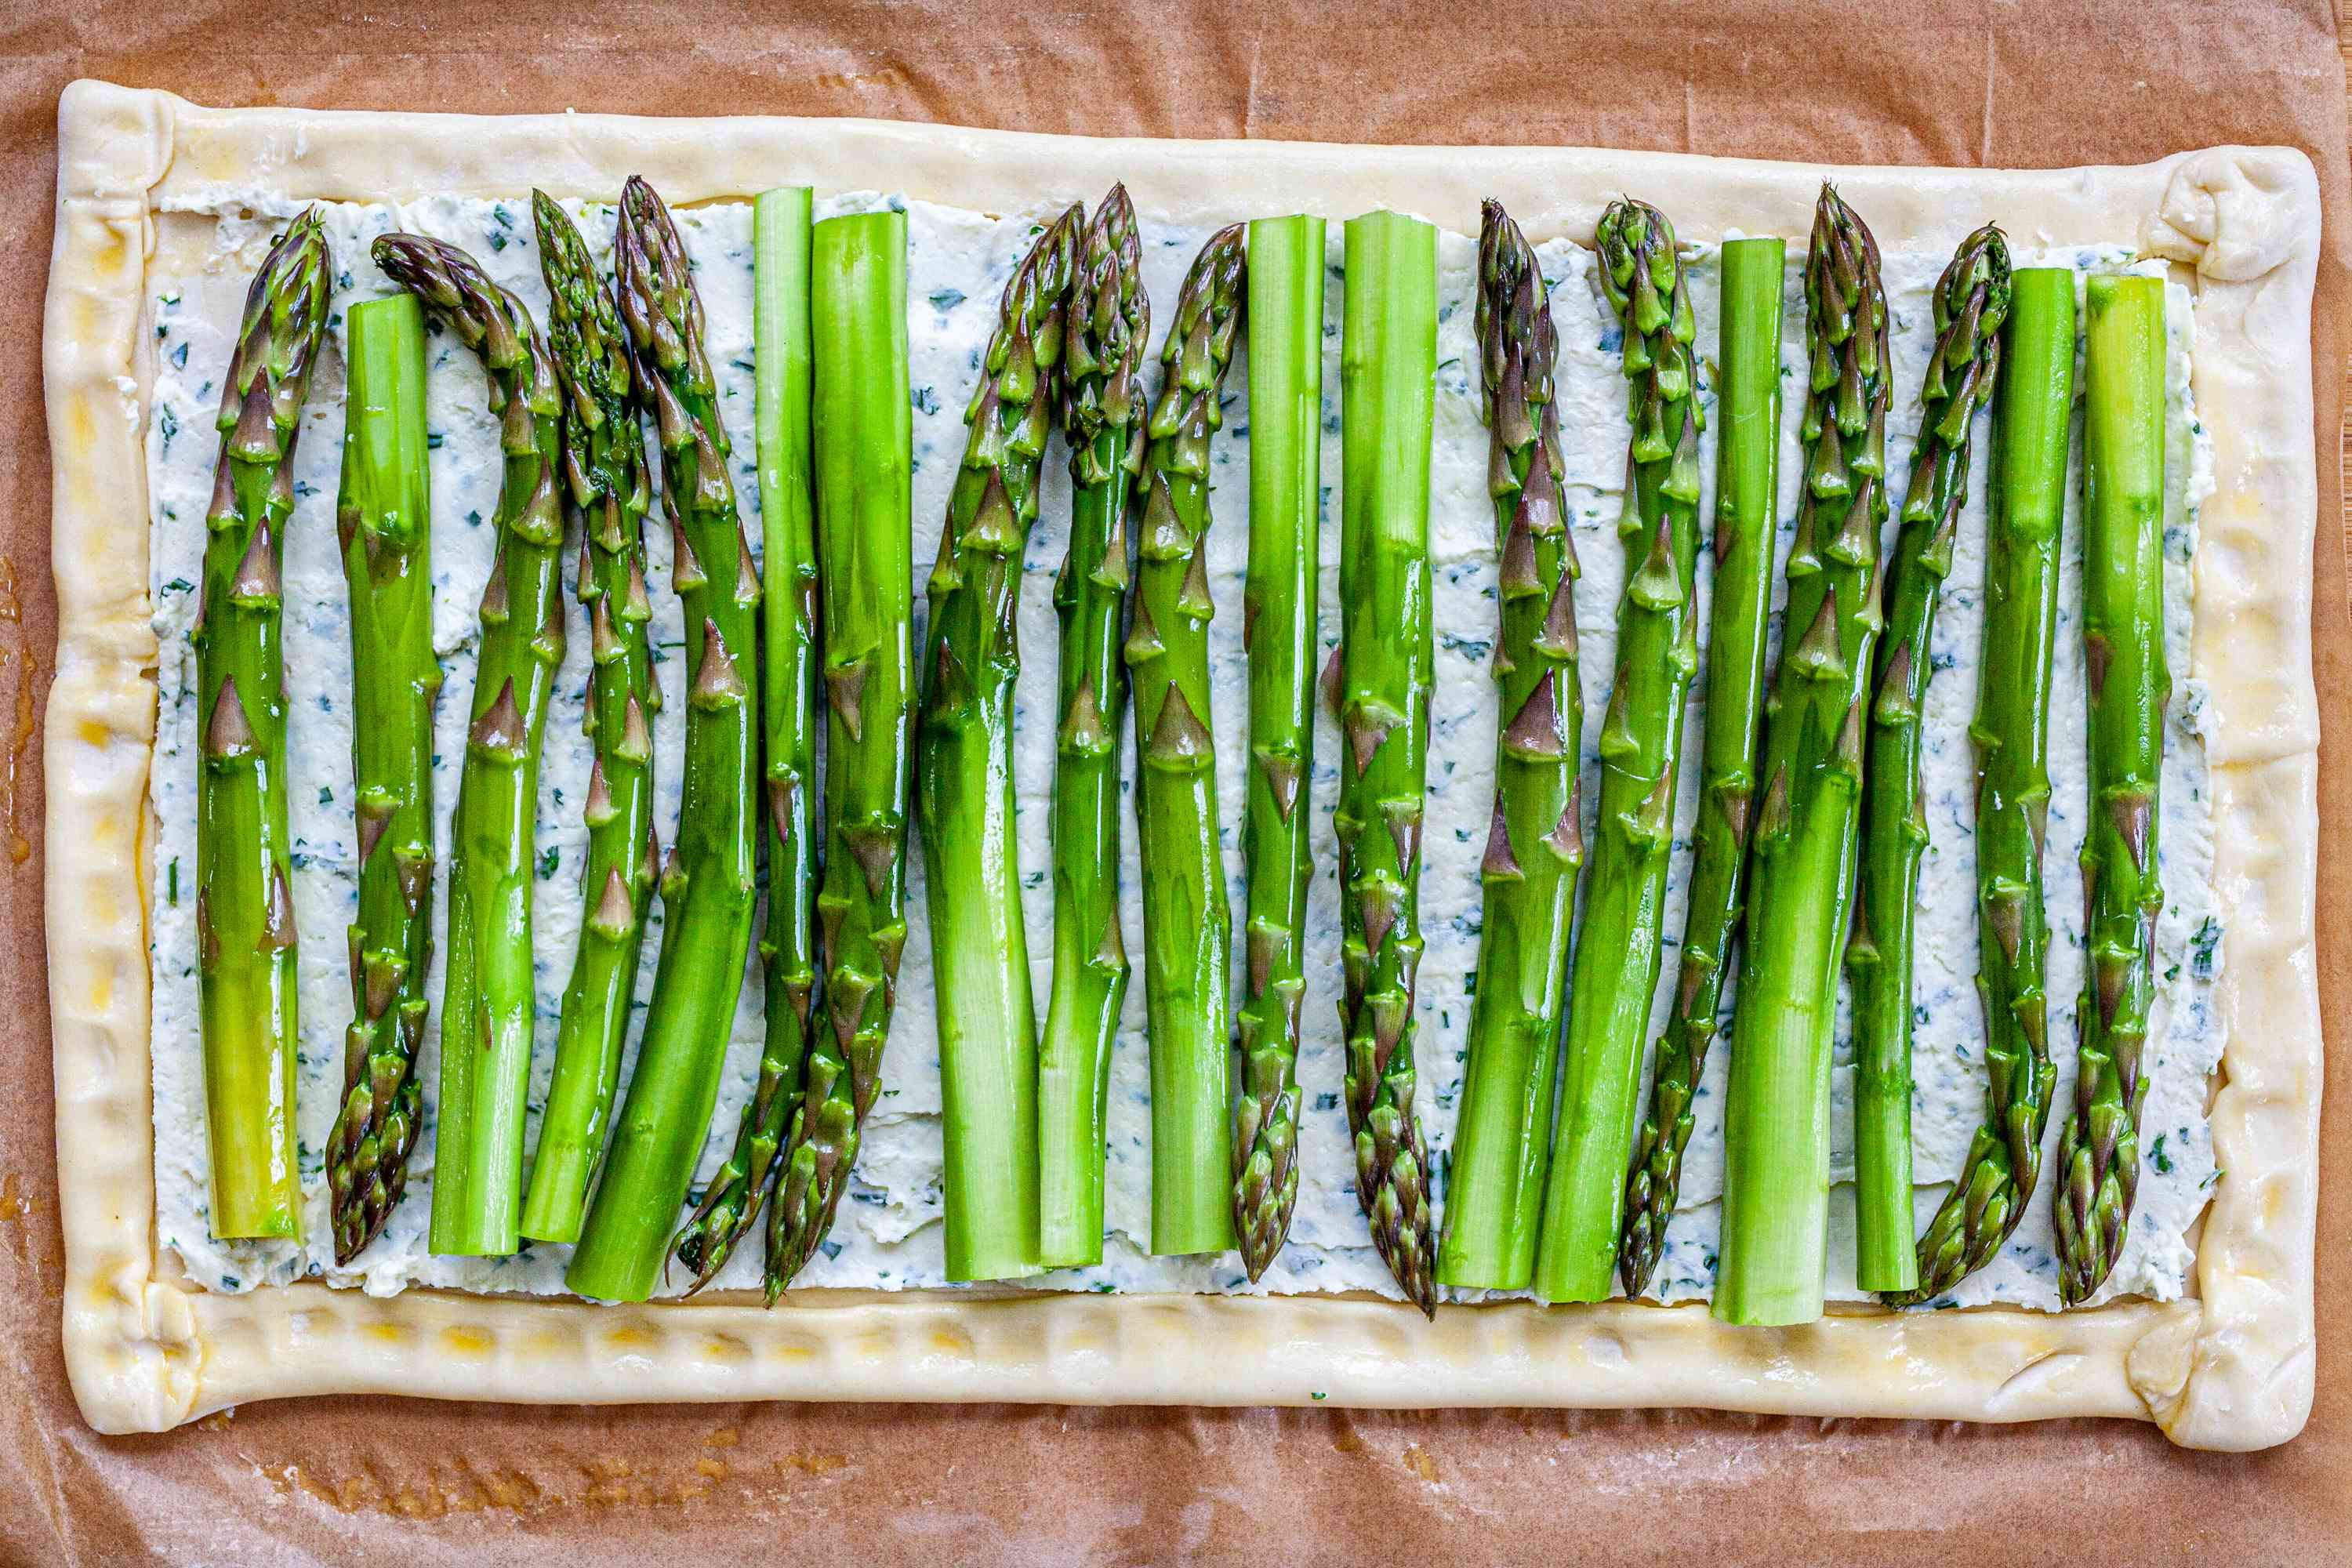 Stalks of asparagus added to an Asparagus Tart with Goat Cheese and Lemon.